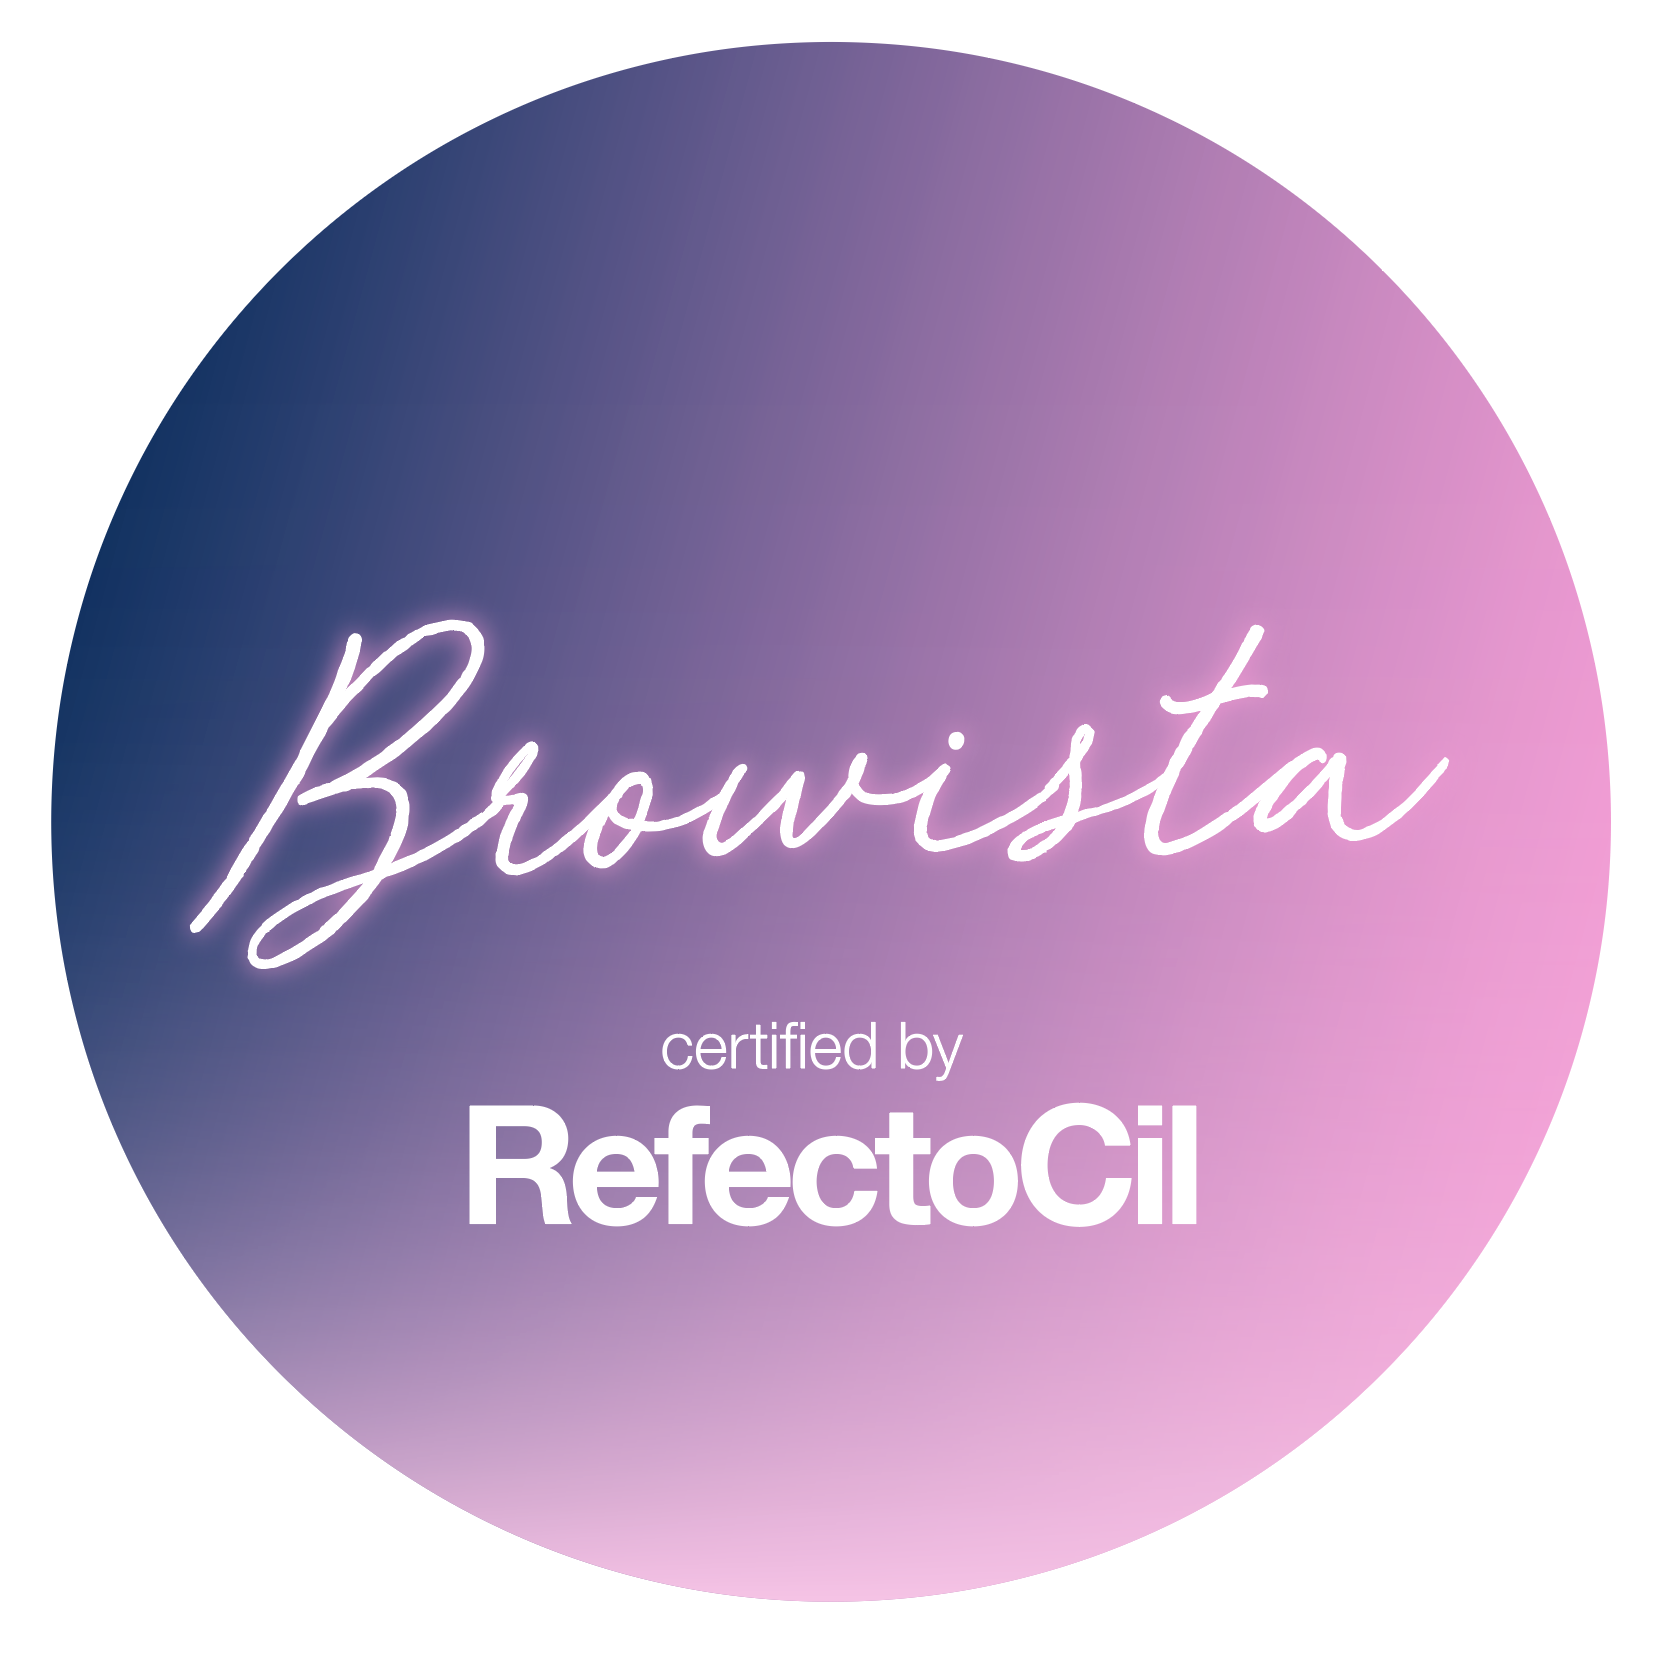 Gain VIP Salon Status - and become a Browista with RefectoCil!Definition of a Browista by RefectoCil:noun [C] / brau.is.ta / phantasy word derived from Fashionista/Barista. A brow & lash styling expert after completion of a RefectoCil Masterclass.Enquire today at info@refectocil.co.za